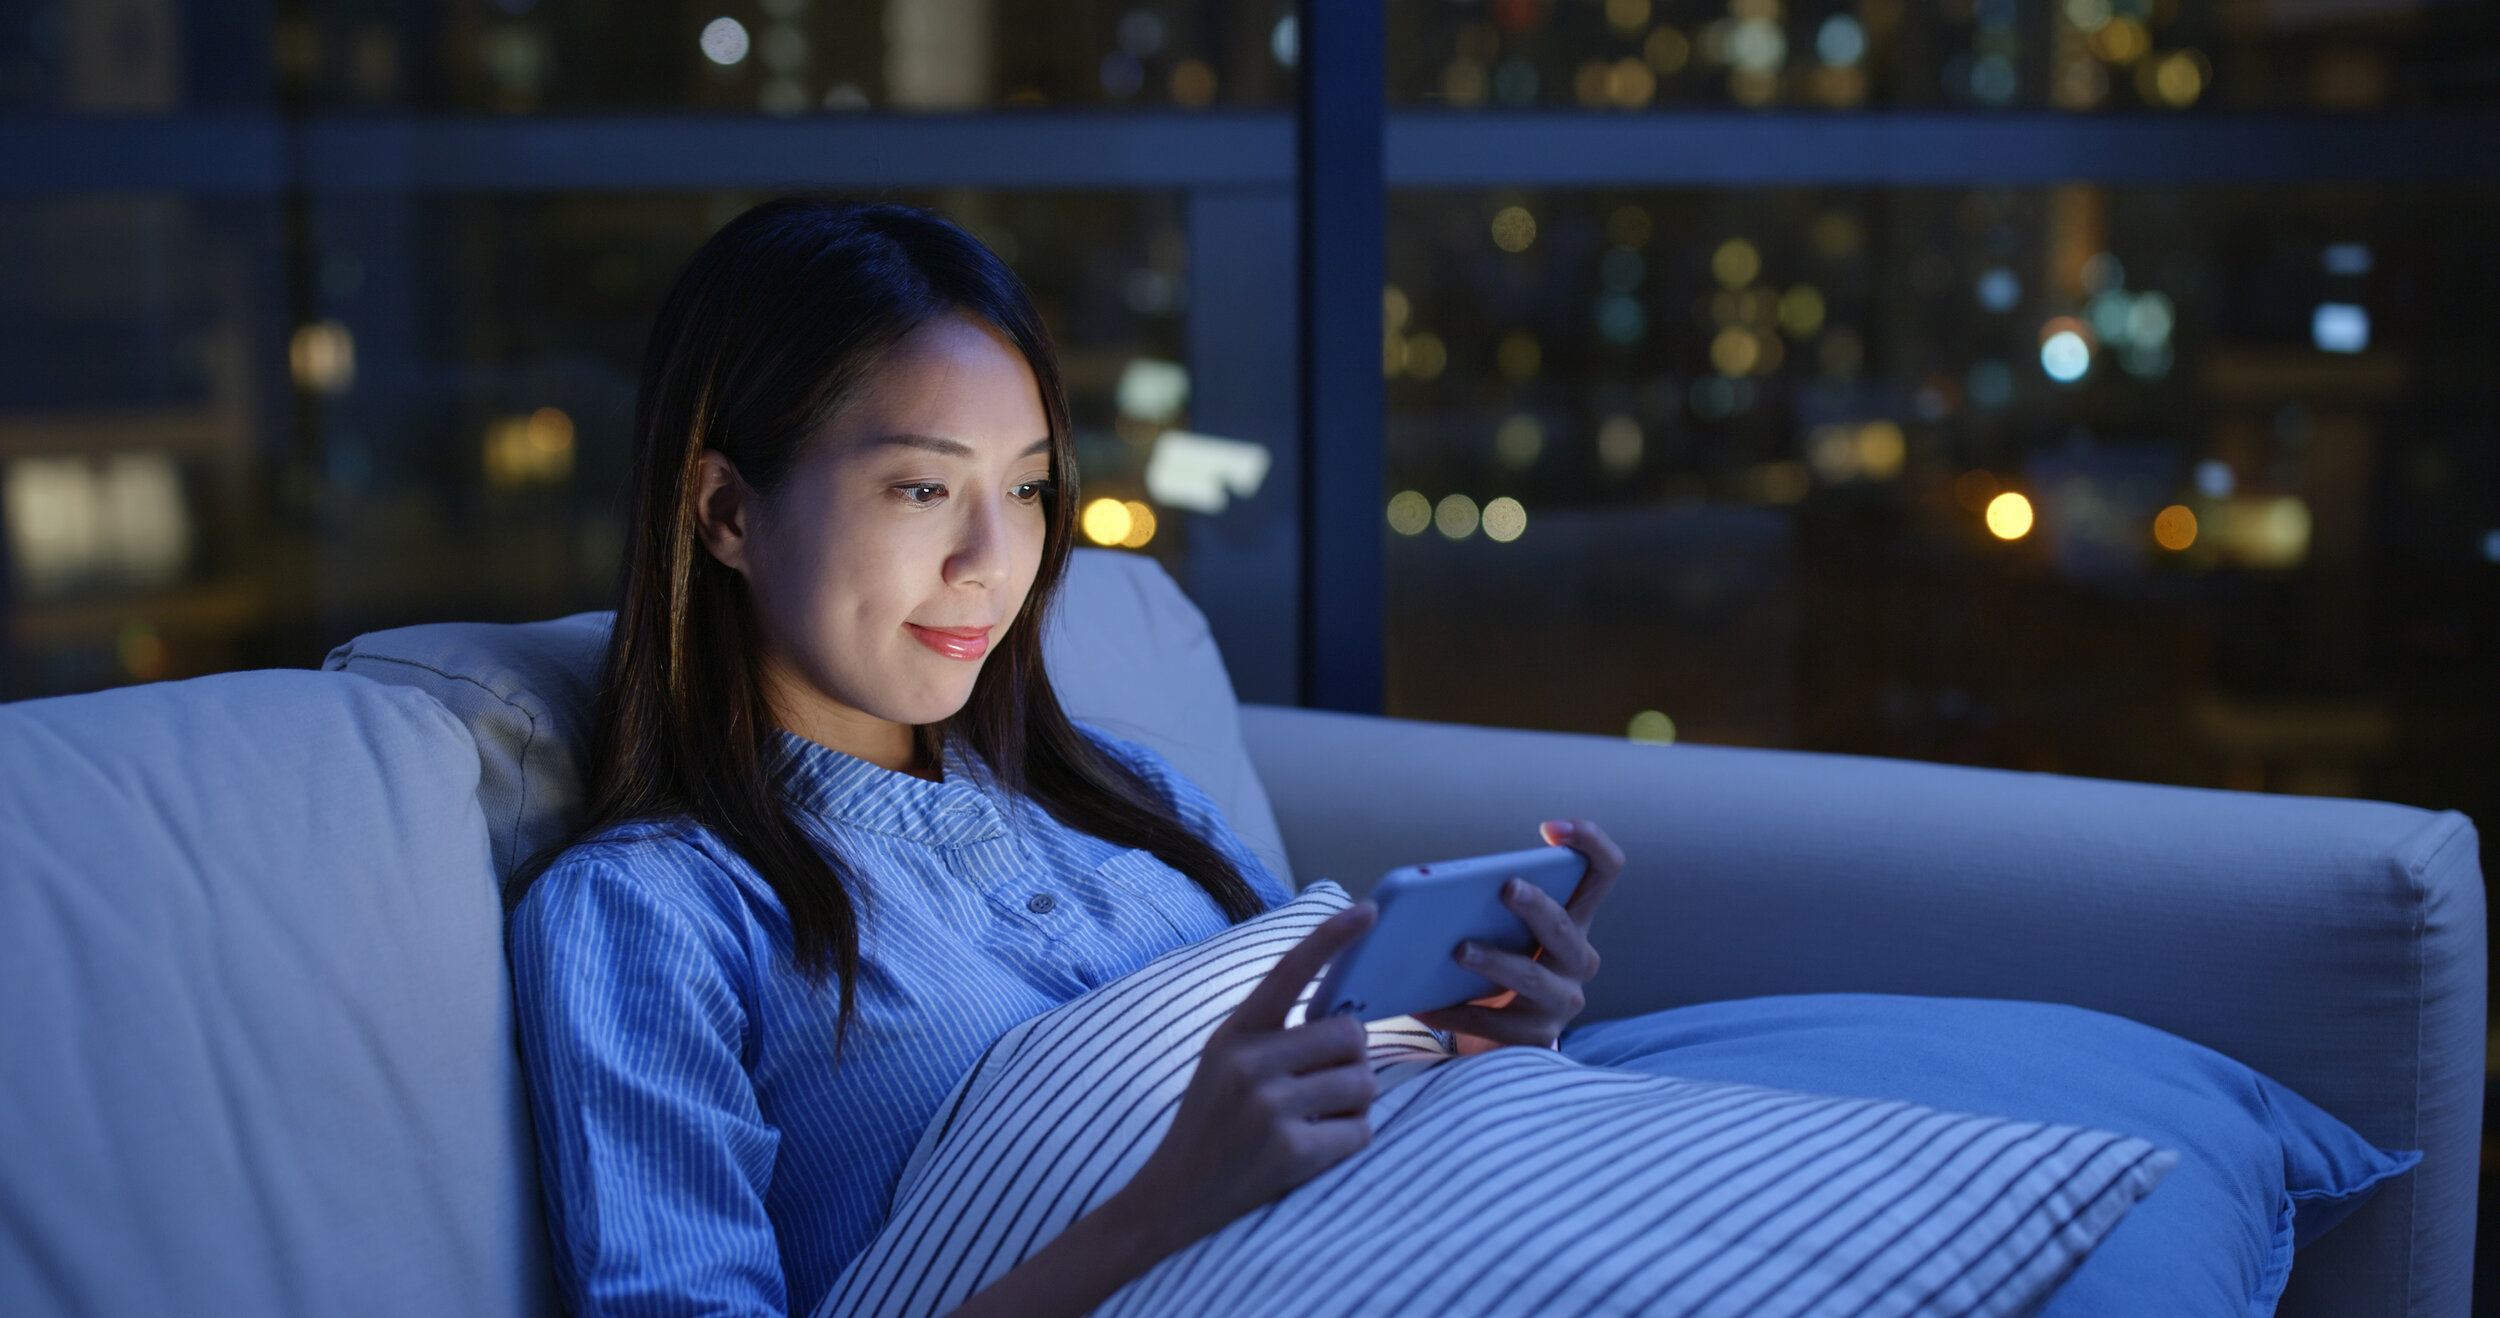 woman-watch-video-on-cellphone-at-night